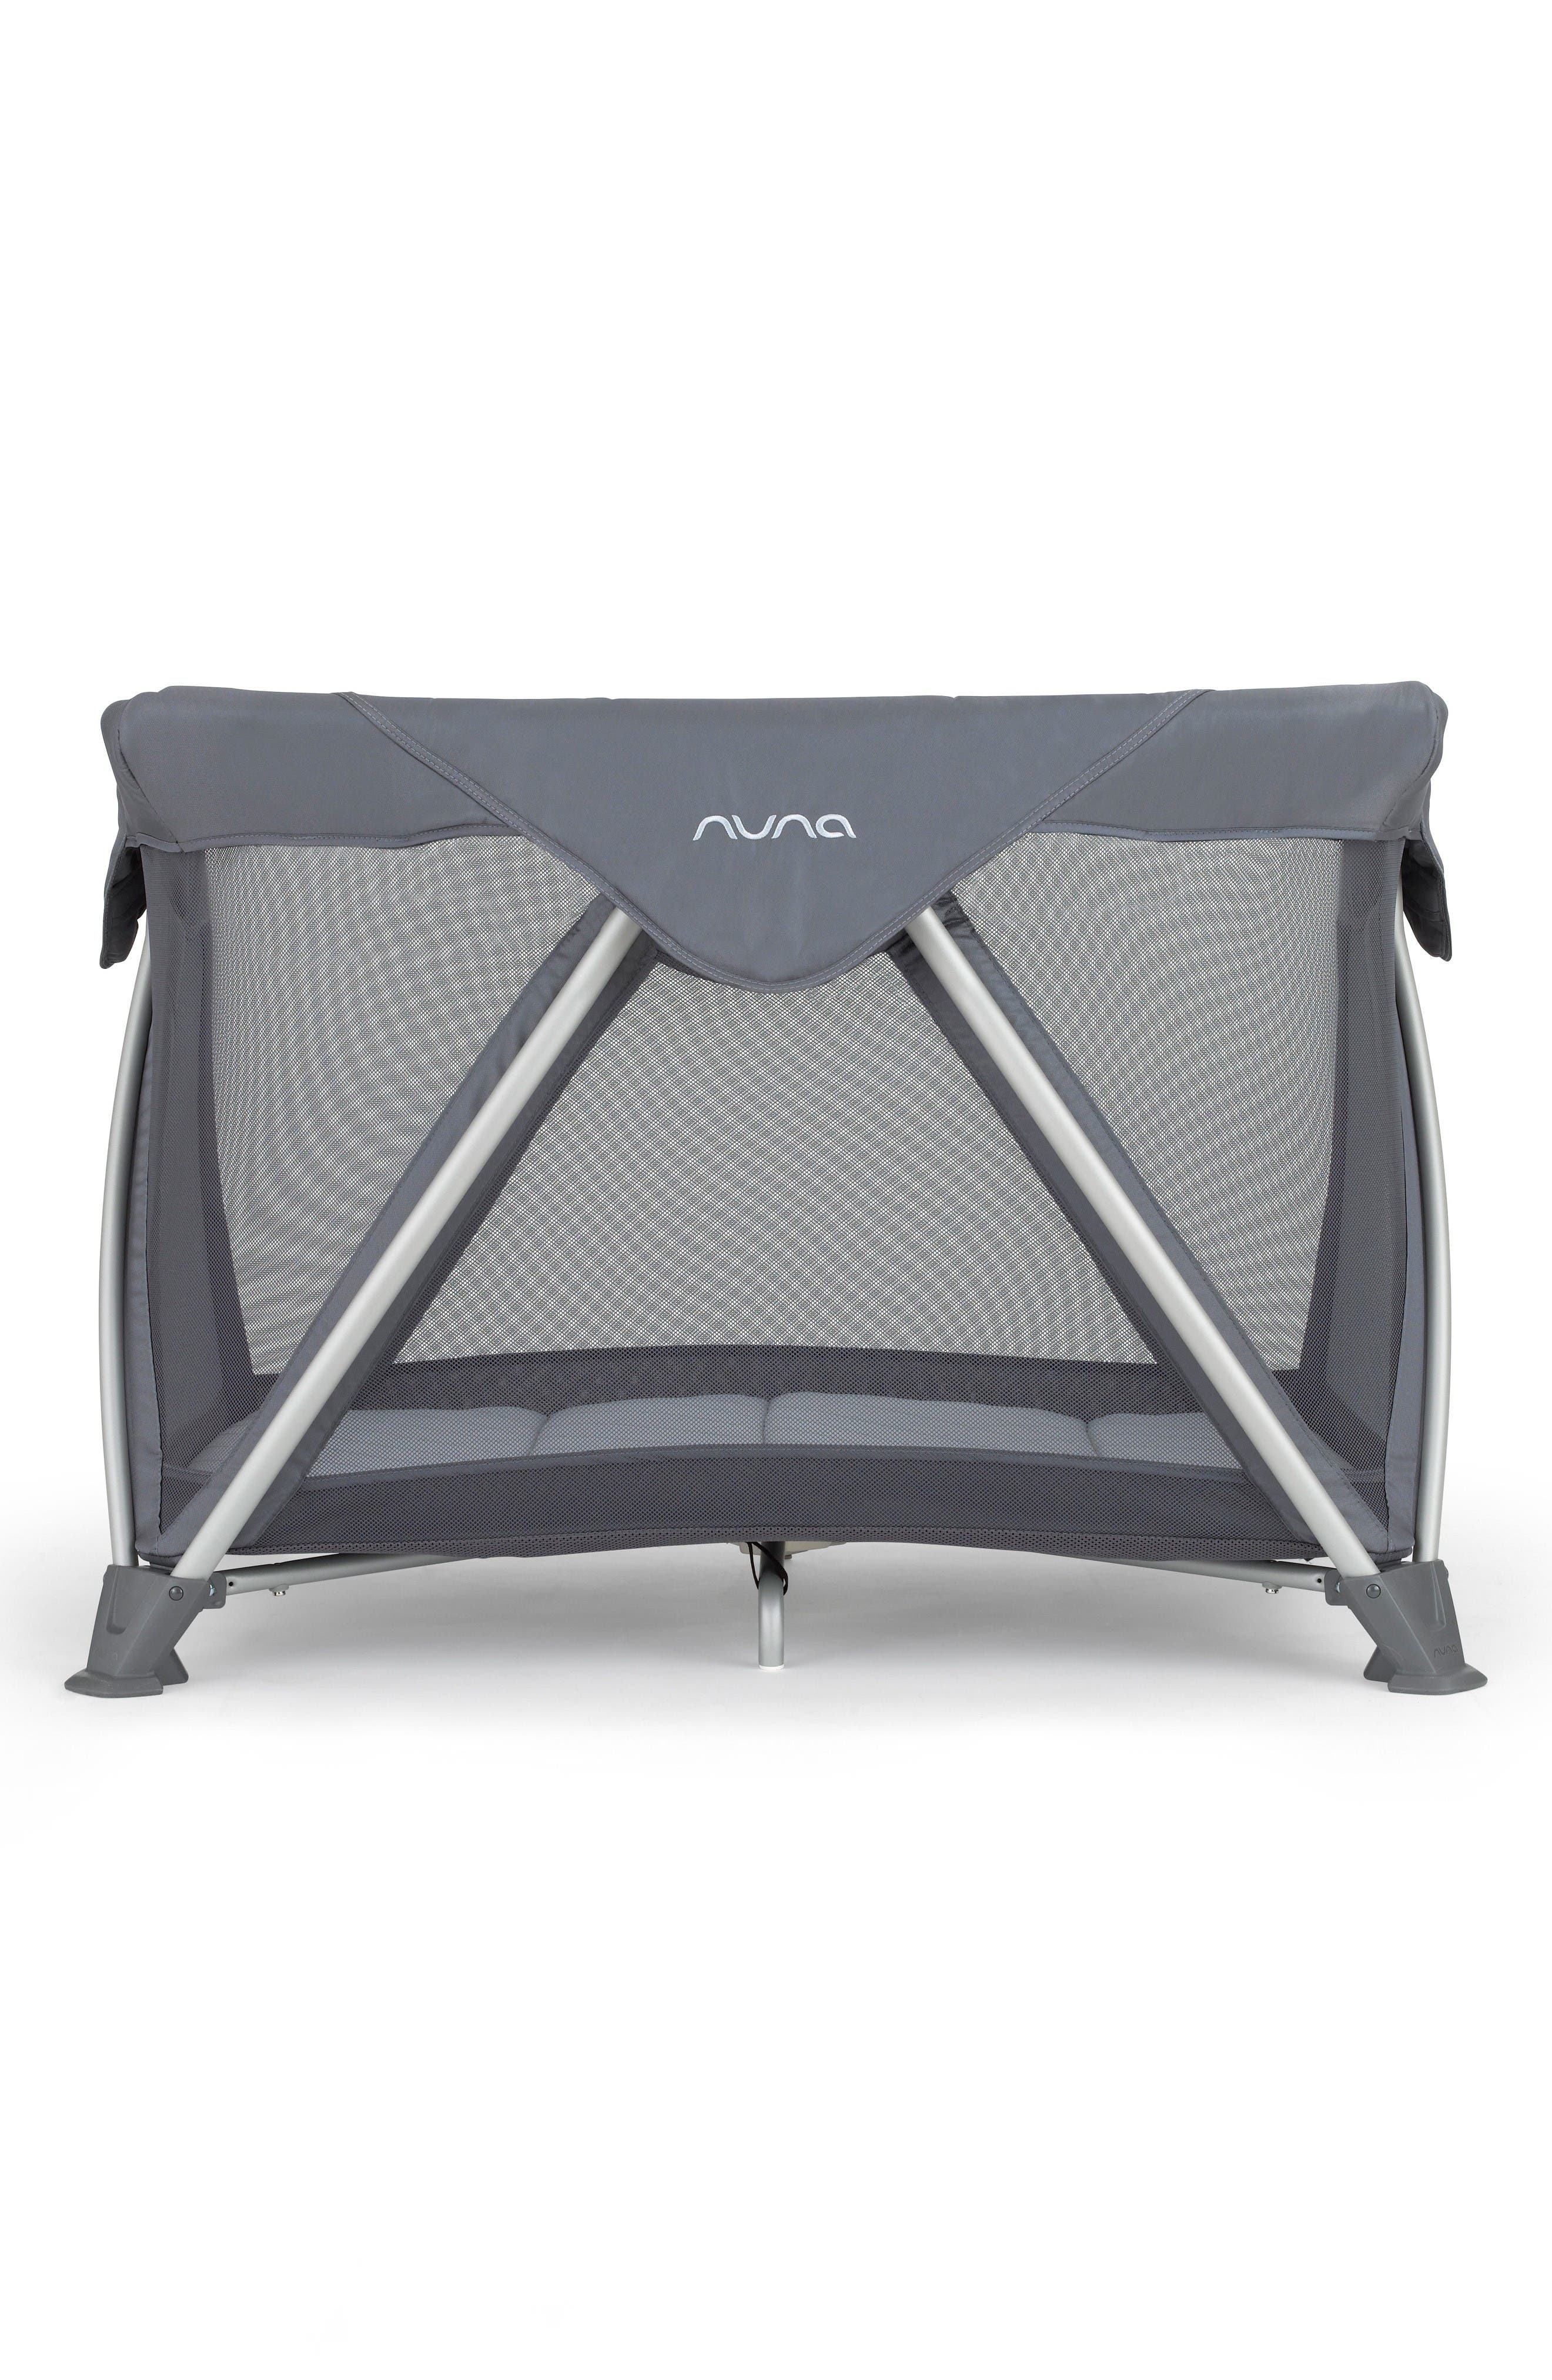 nuna SENA™ Mini Aire Travel Crib